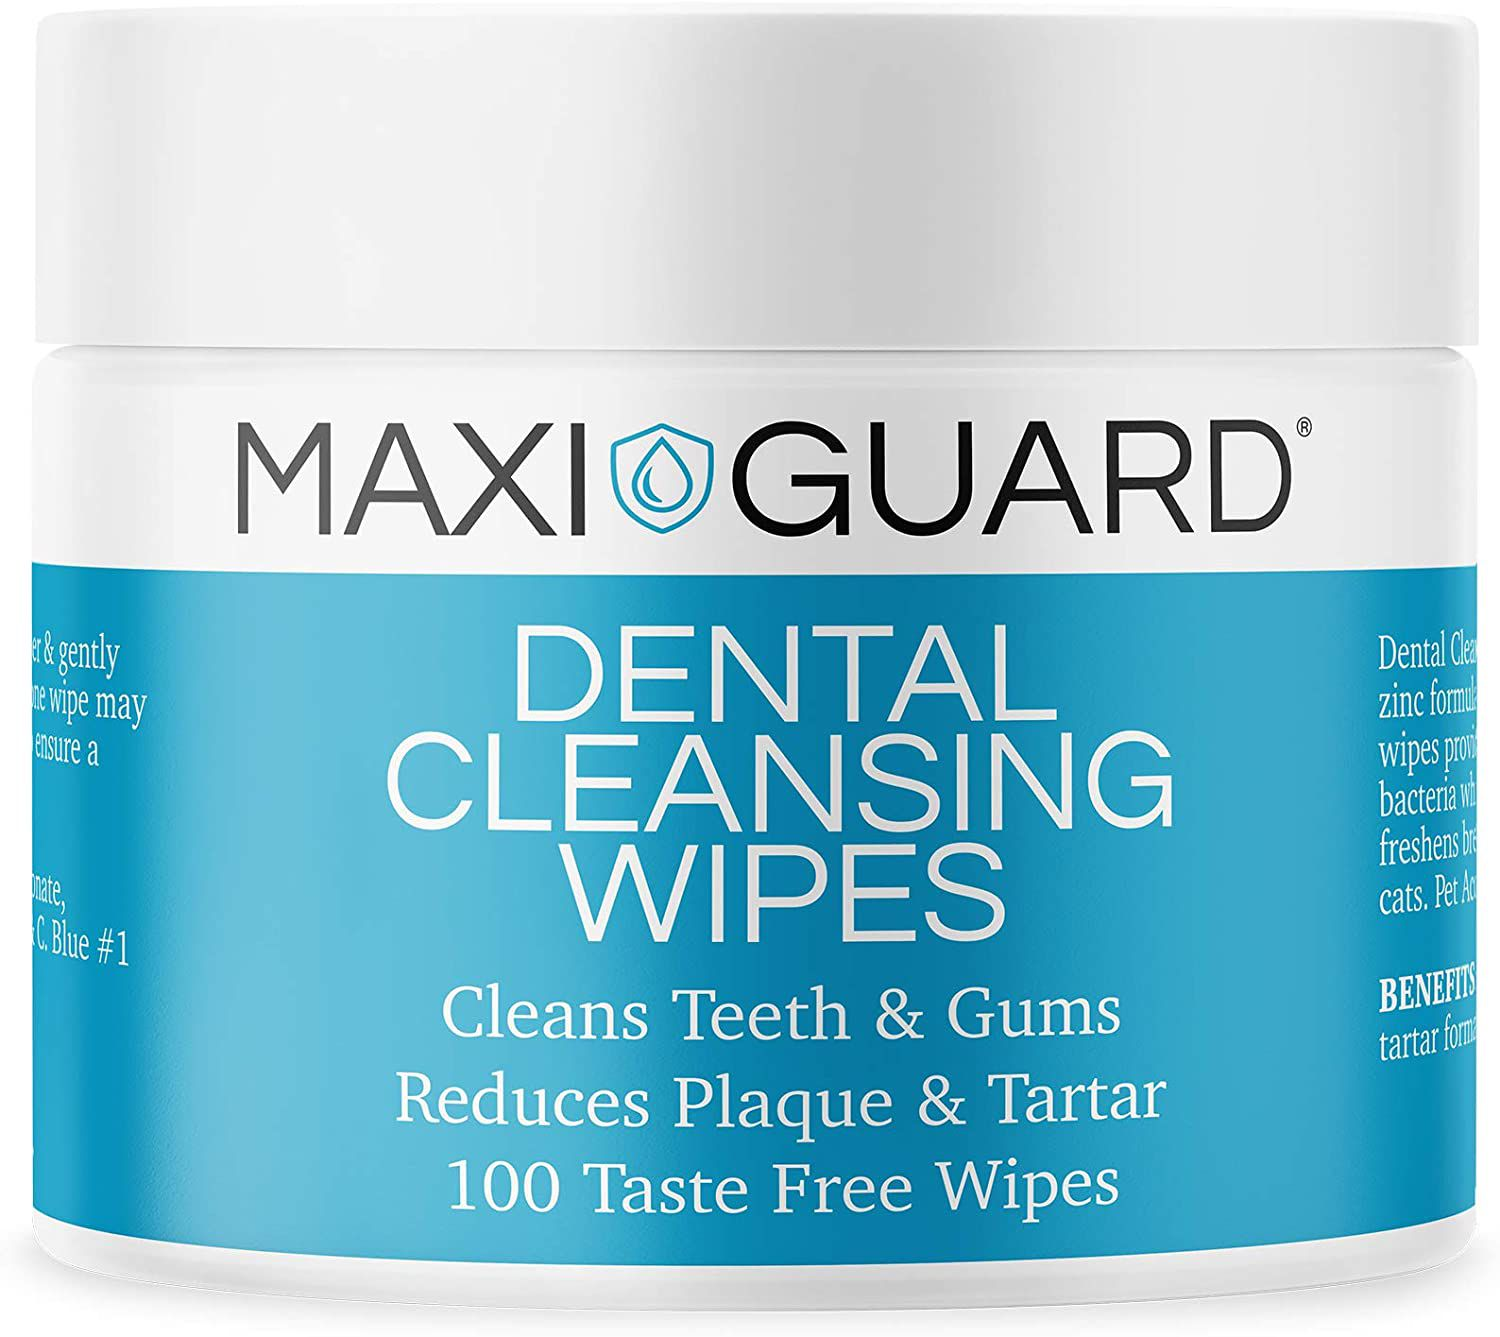 Maxi-Guard Dental Cleansing Wipes